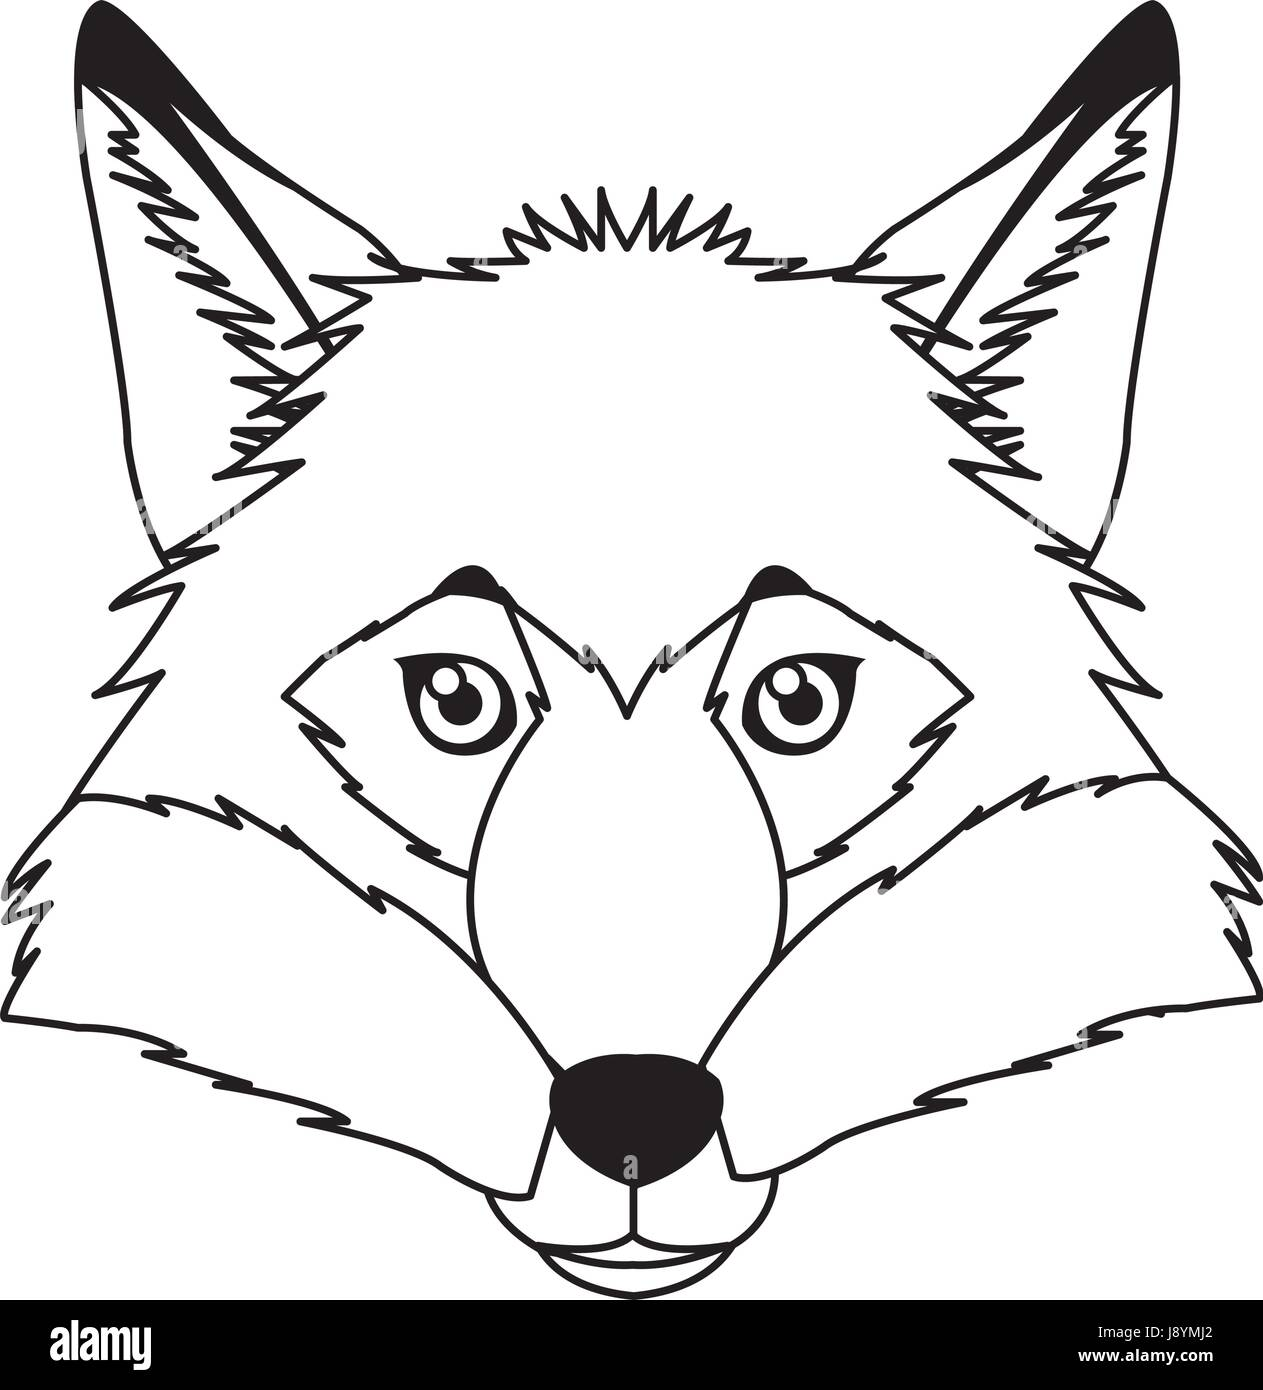 Fox vector mascot icon. Head and muzzle or snout of red or yellow fox animal with green eyes and fur. Isolated emblem - Stock Vector